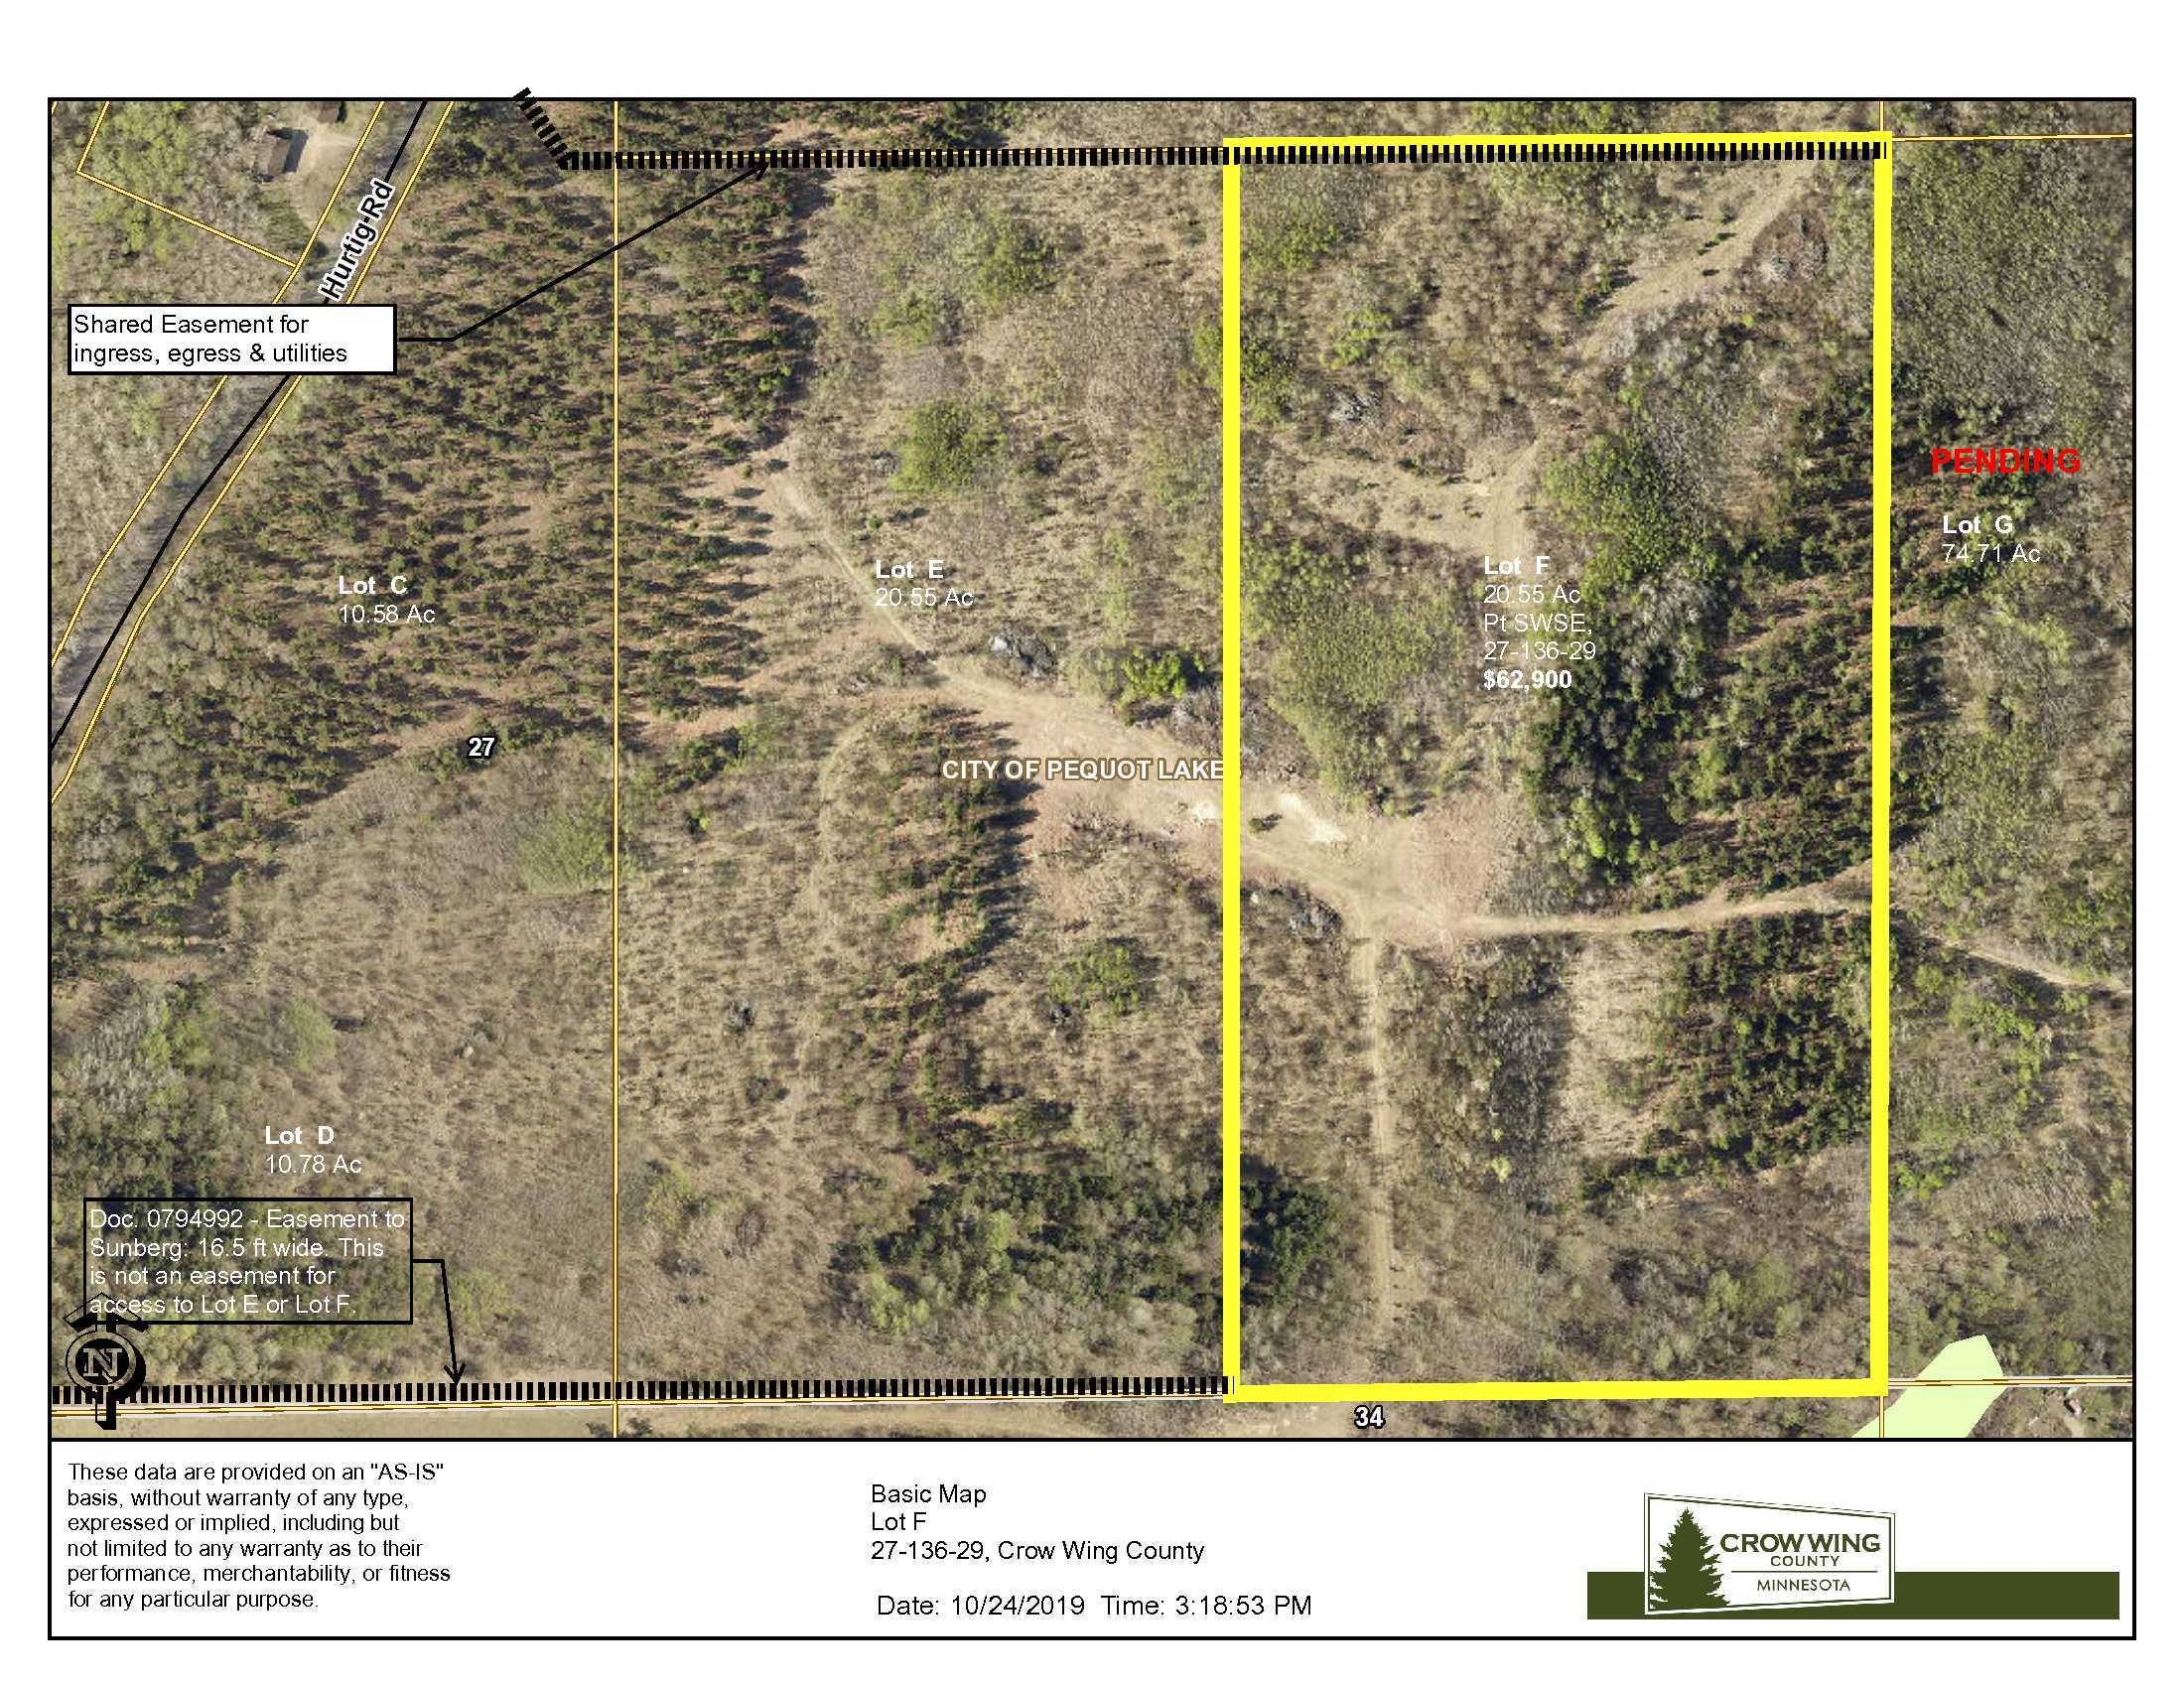 Lot F, 27-136-29, TBD Hurtig Rd, Pequot Lakes, Crow Wing Co